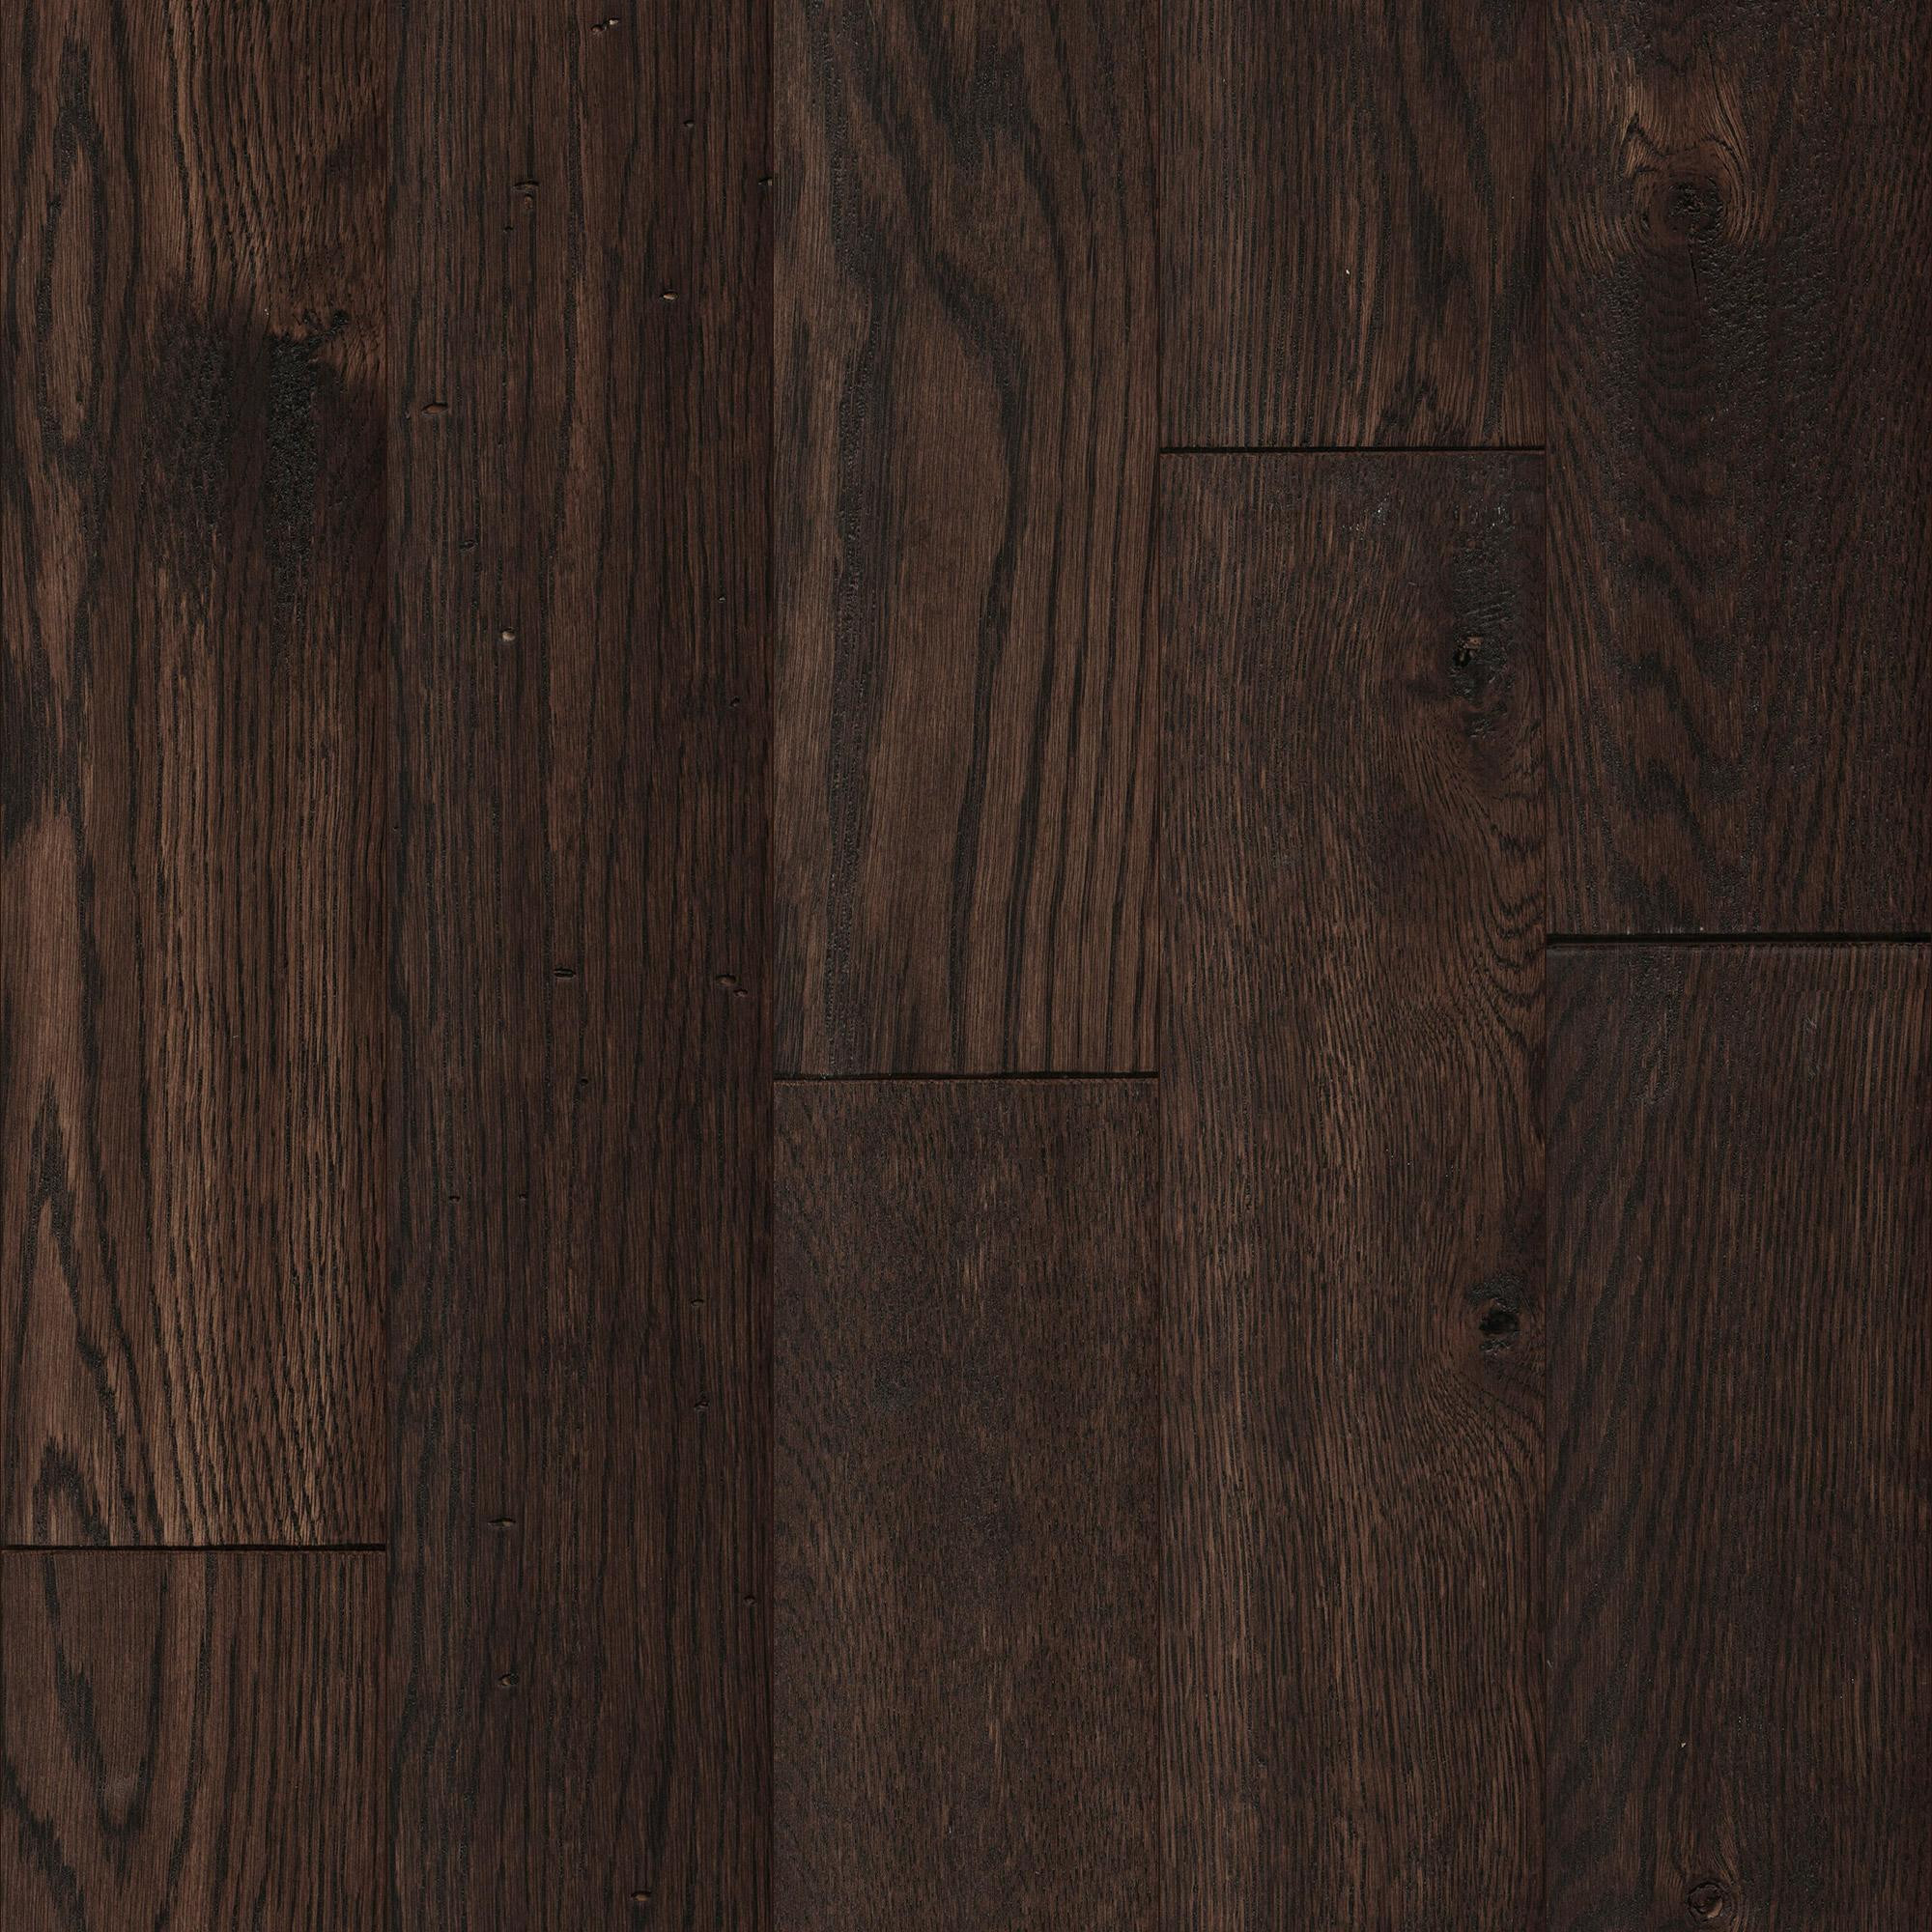 Armstrong Maple Hardwood Flooring Of Mullican Chatelaine Oak Ebony 4 Wide solid Hardwood Flooring within More Views